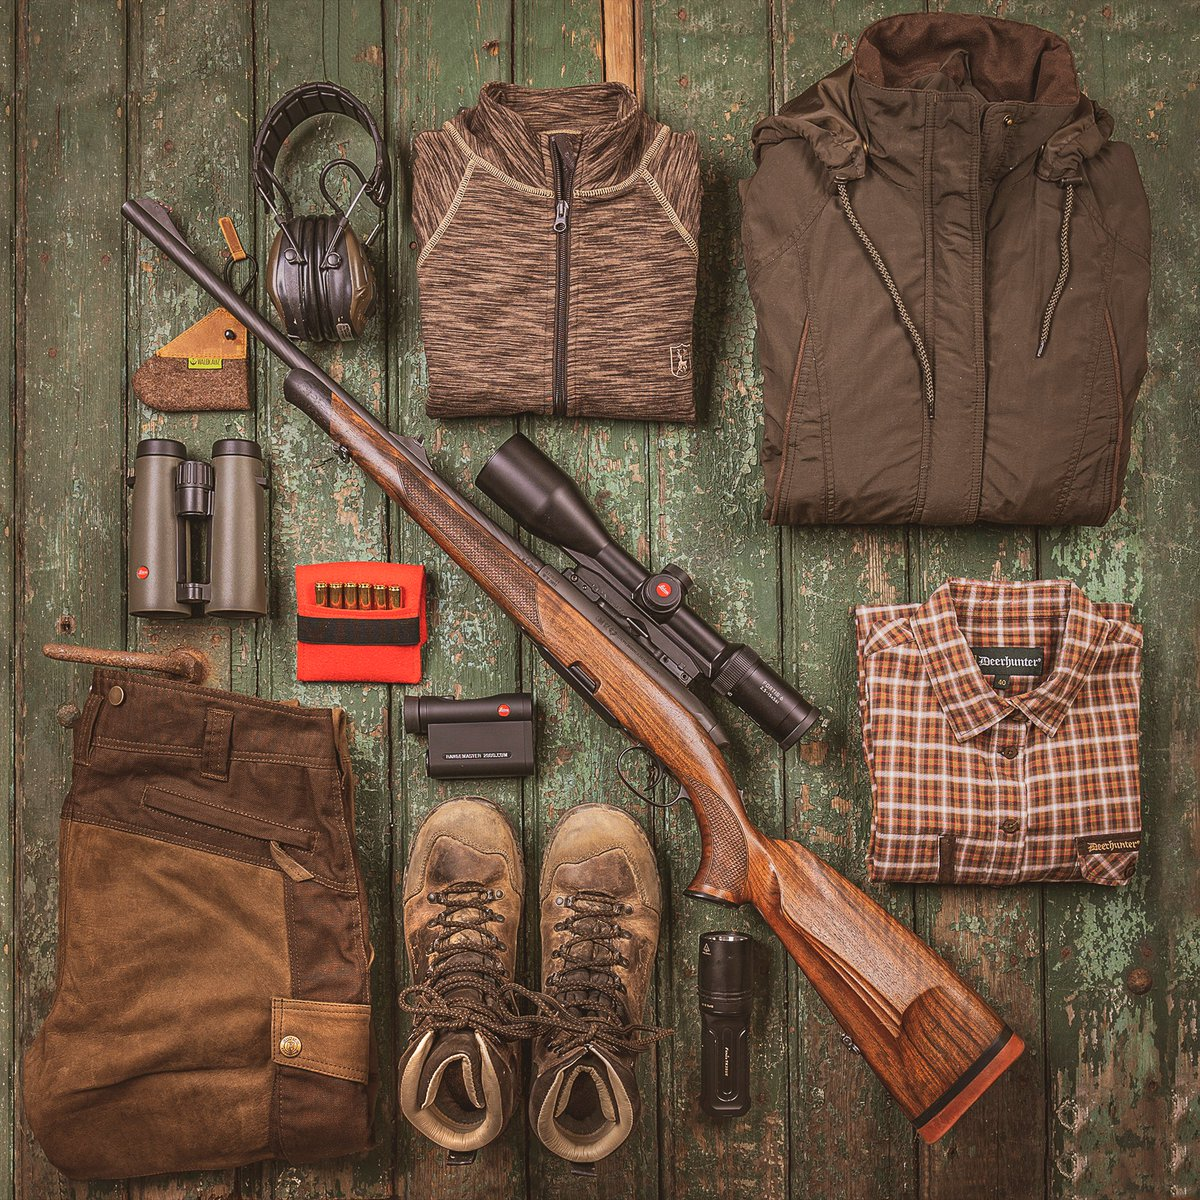 Inspiration for Mother's day gifts 😍 (In Denmark it is on Sunday May 10) or for the upcoming hunting season🦌 or just for the #greatoutdoors 🏕️🏞️  👉https://t.co/krn72PavNs  #outdoorgear #jagttøj #outdoorclothing #outdoorwomen #jagdbekleidung #Waidmannsheil https://t.co/SboQZGJaa2